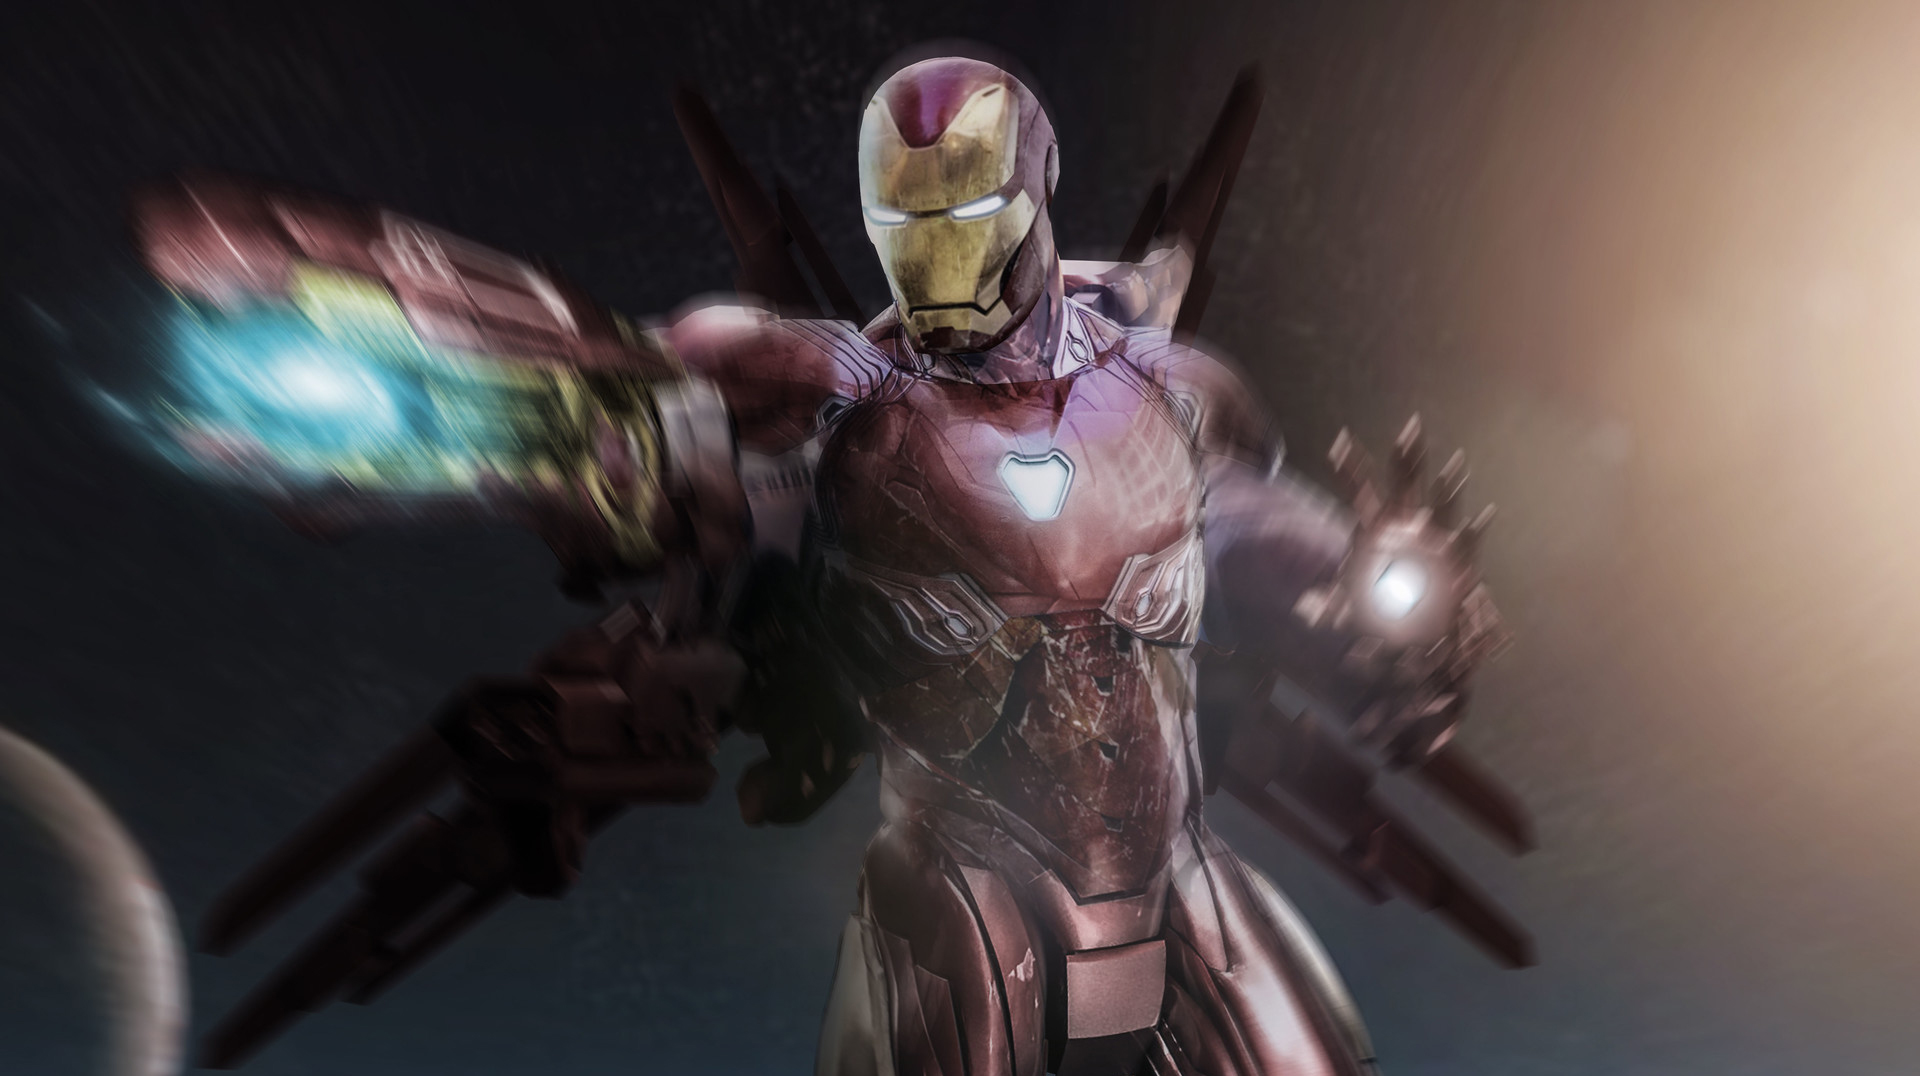 1280x1024 Iron Man Avengers Infinity War Suit 1280x1024